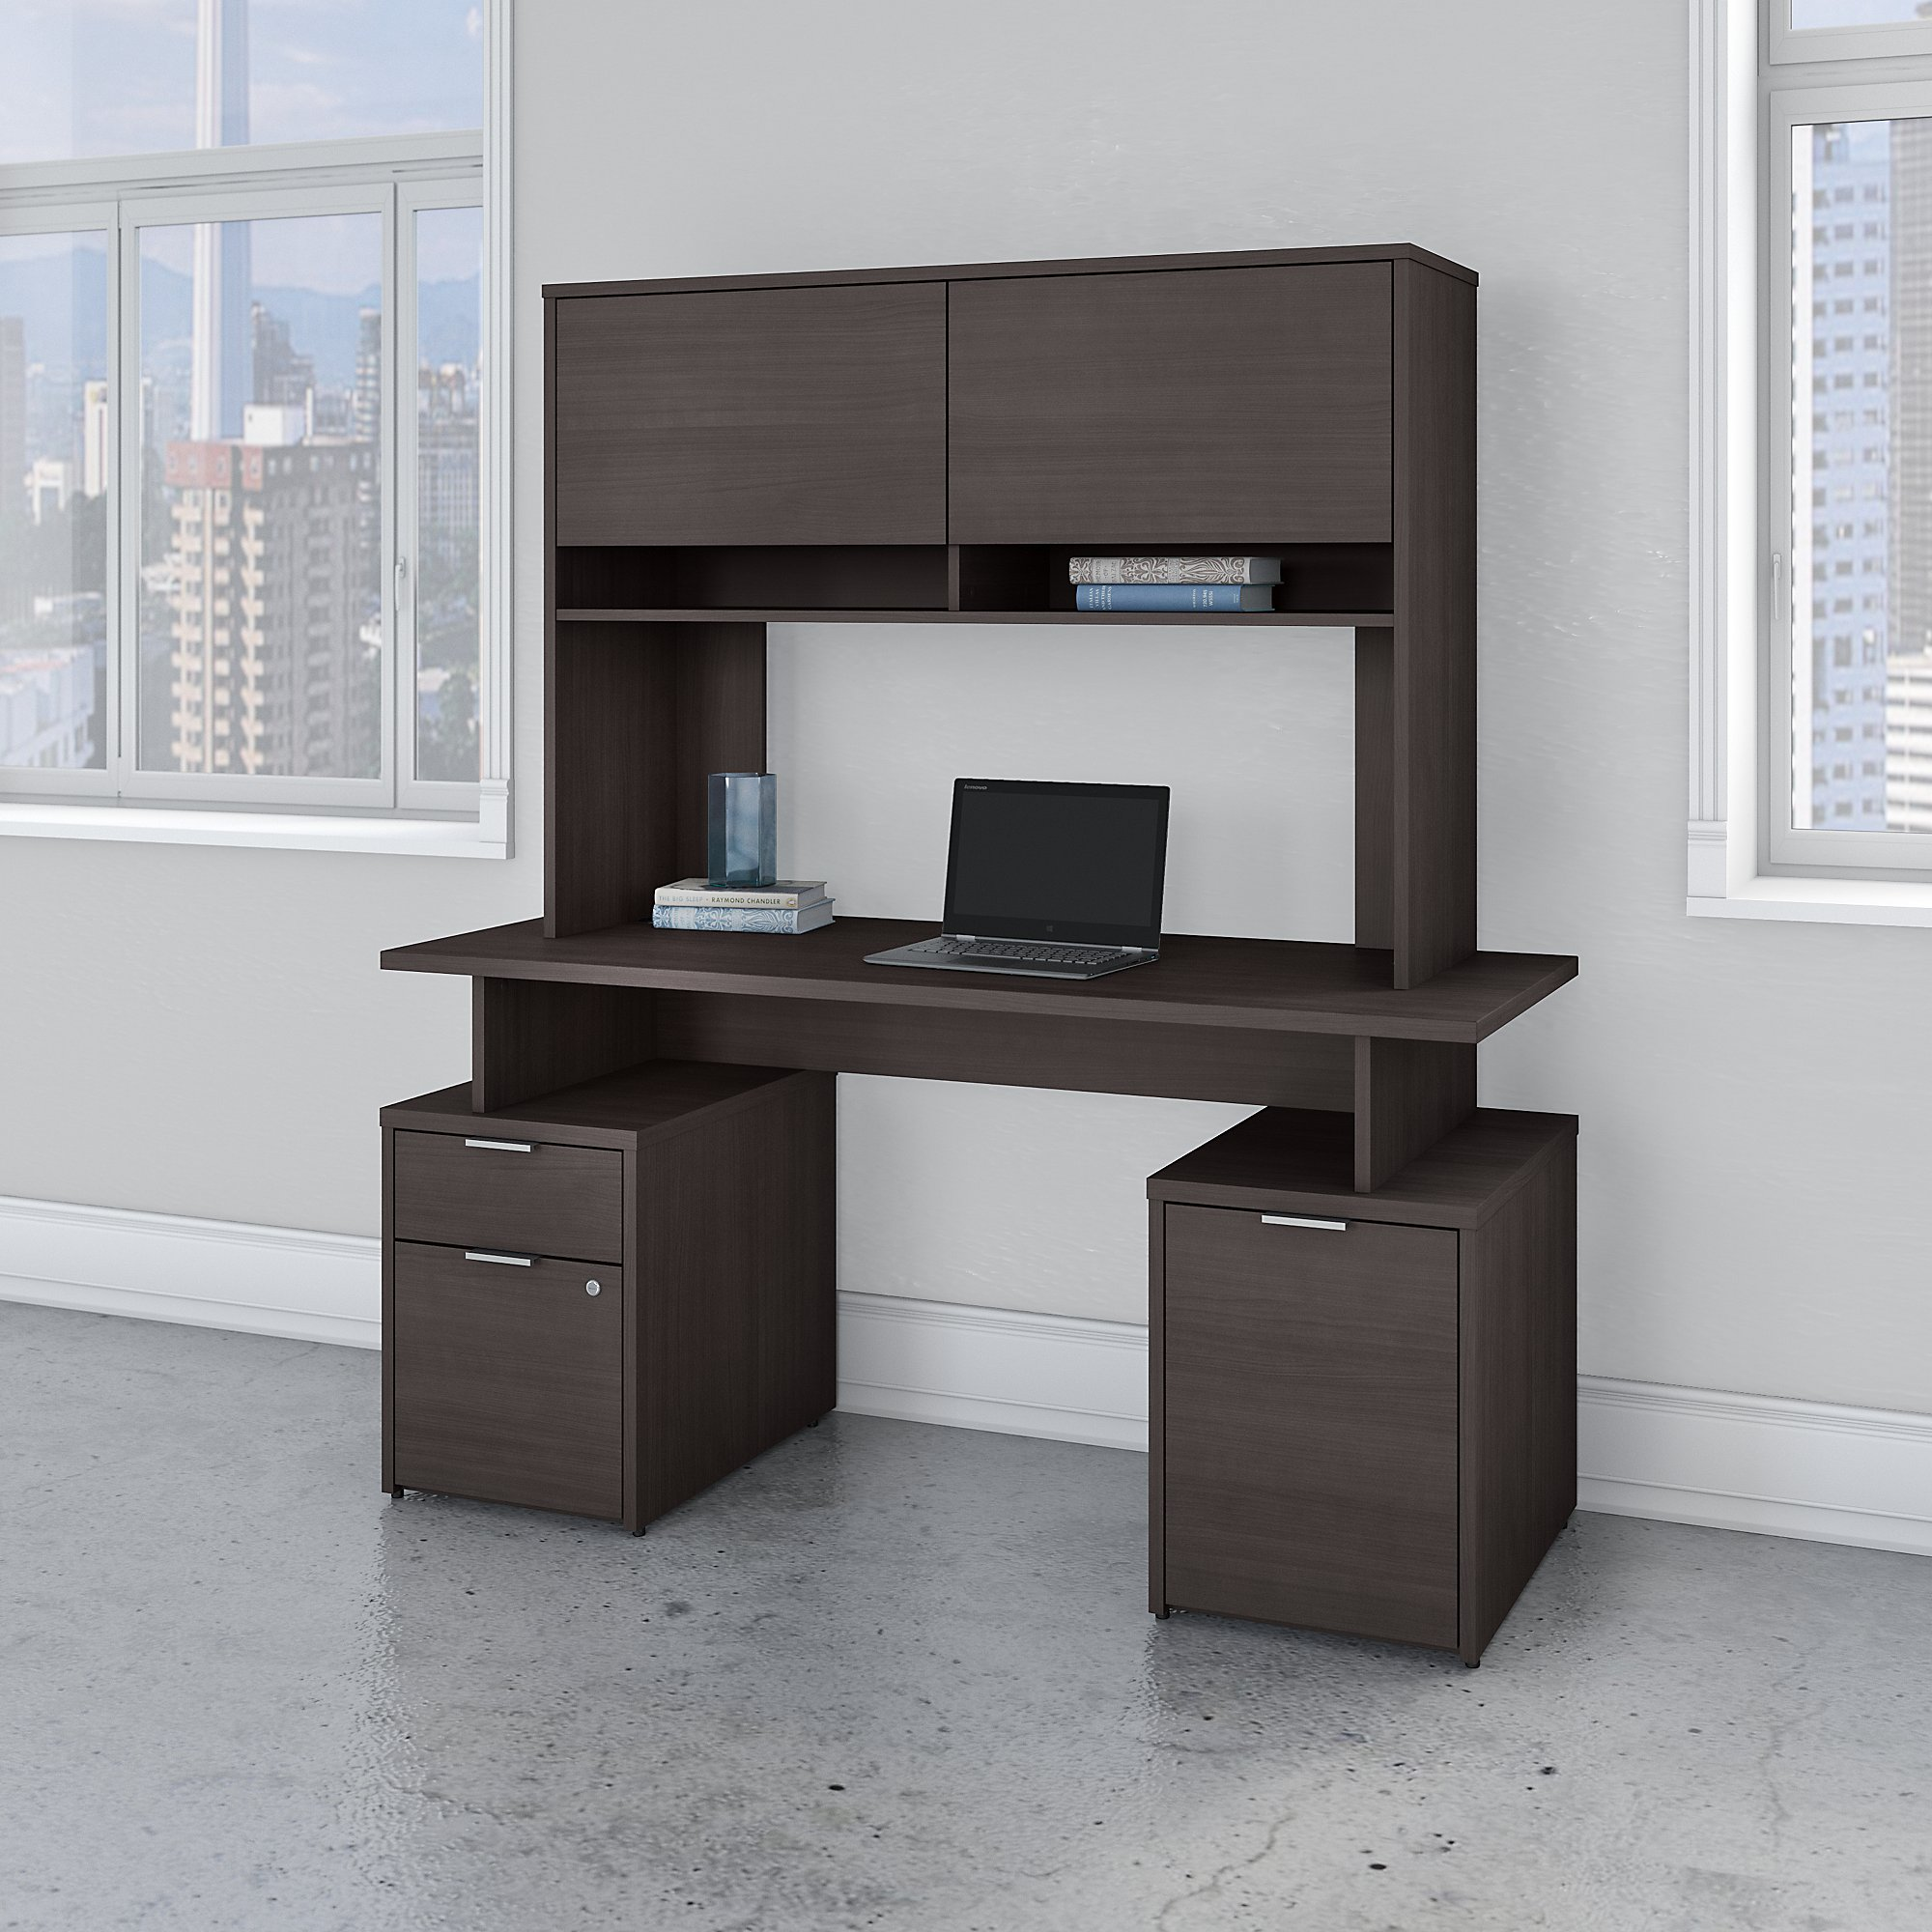 Bush Business Furniture Jamestown 60W Desk with Drawers, Storage Cabinet and Hutch